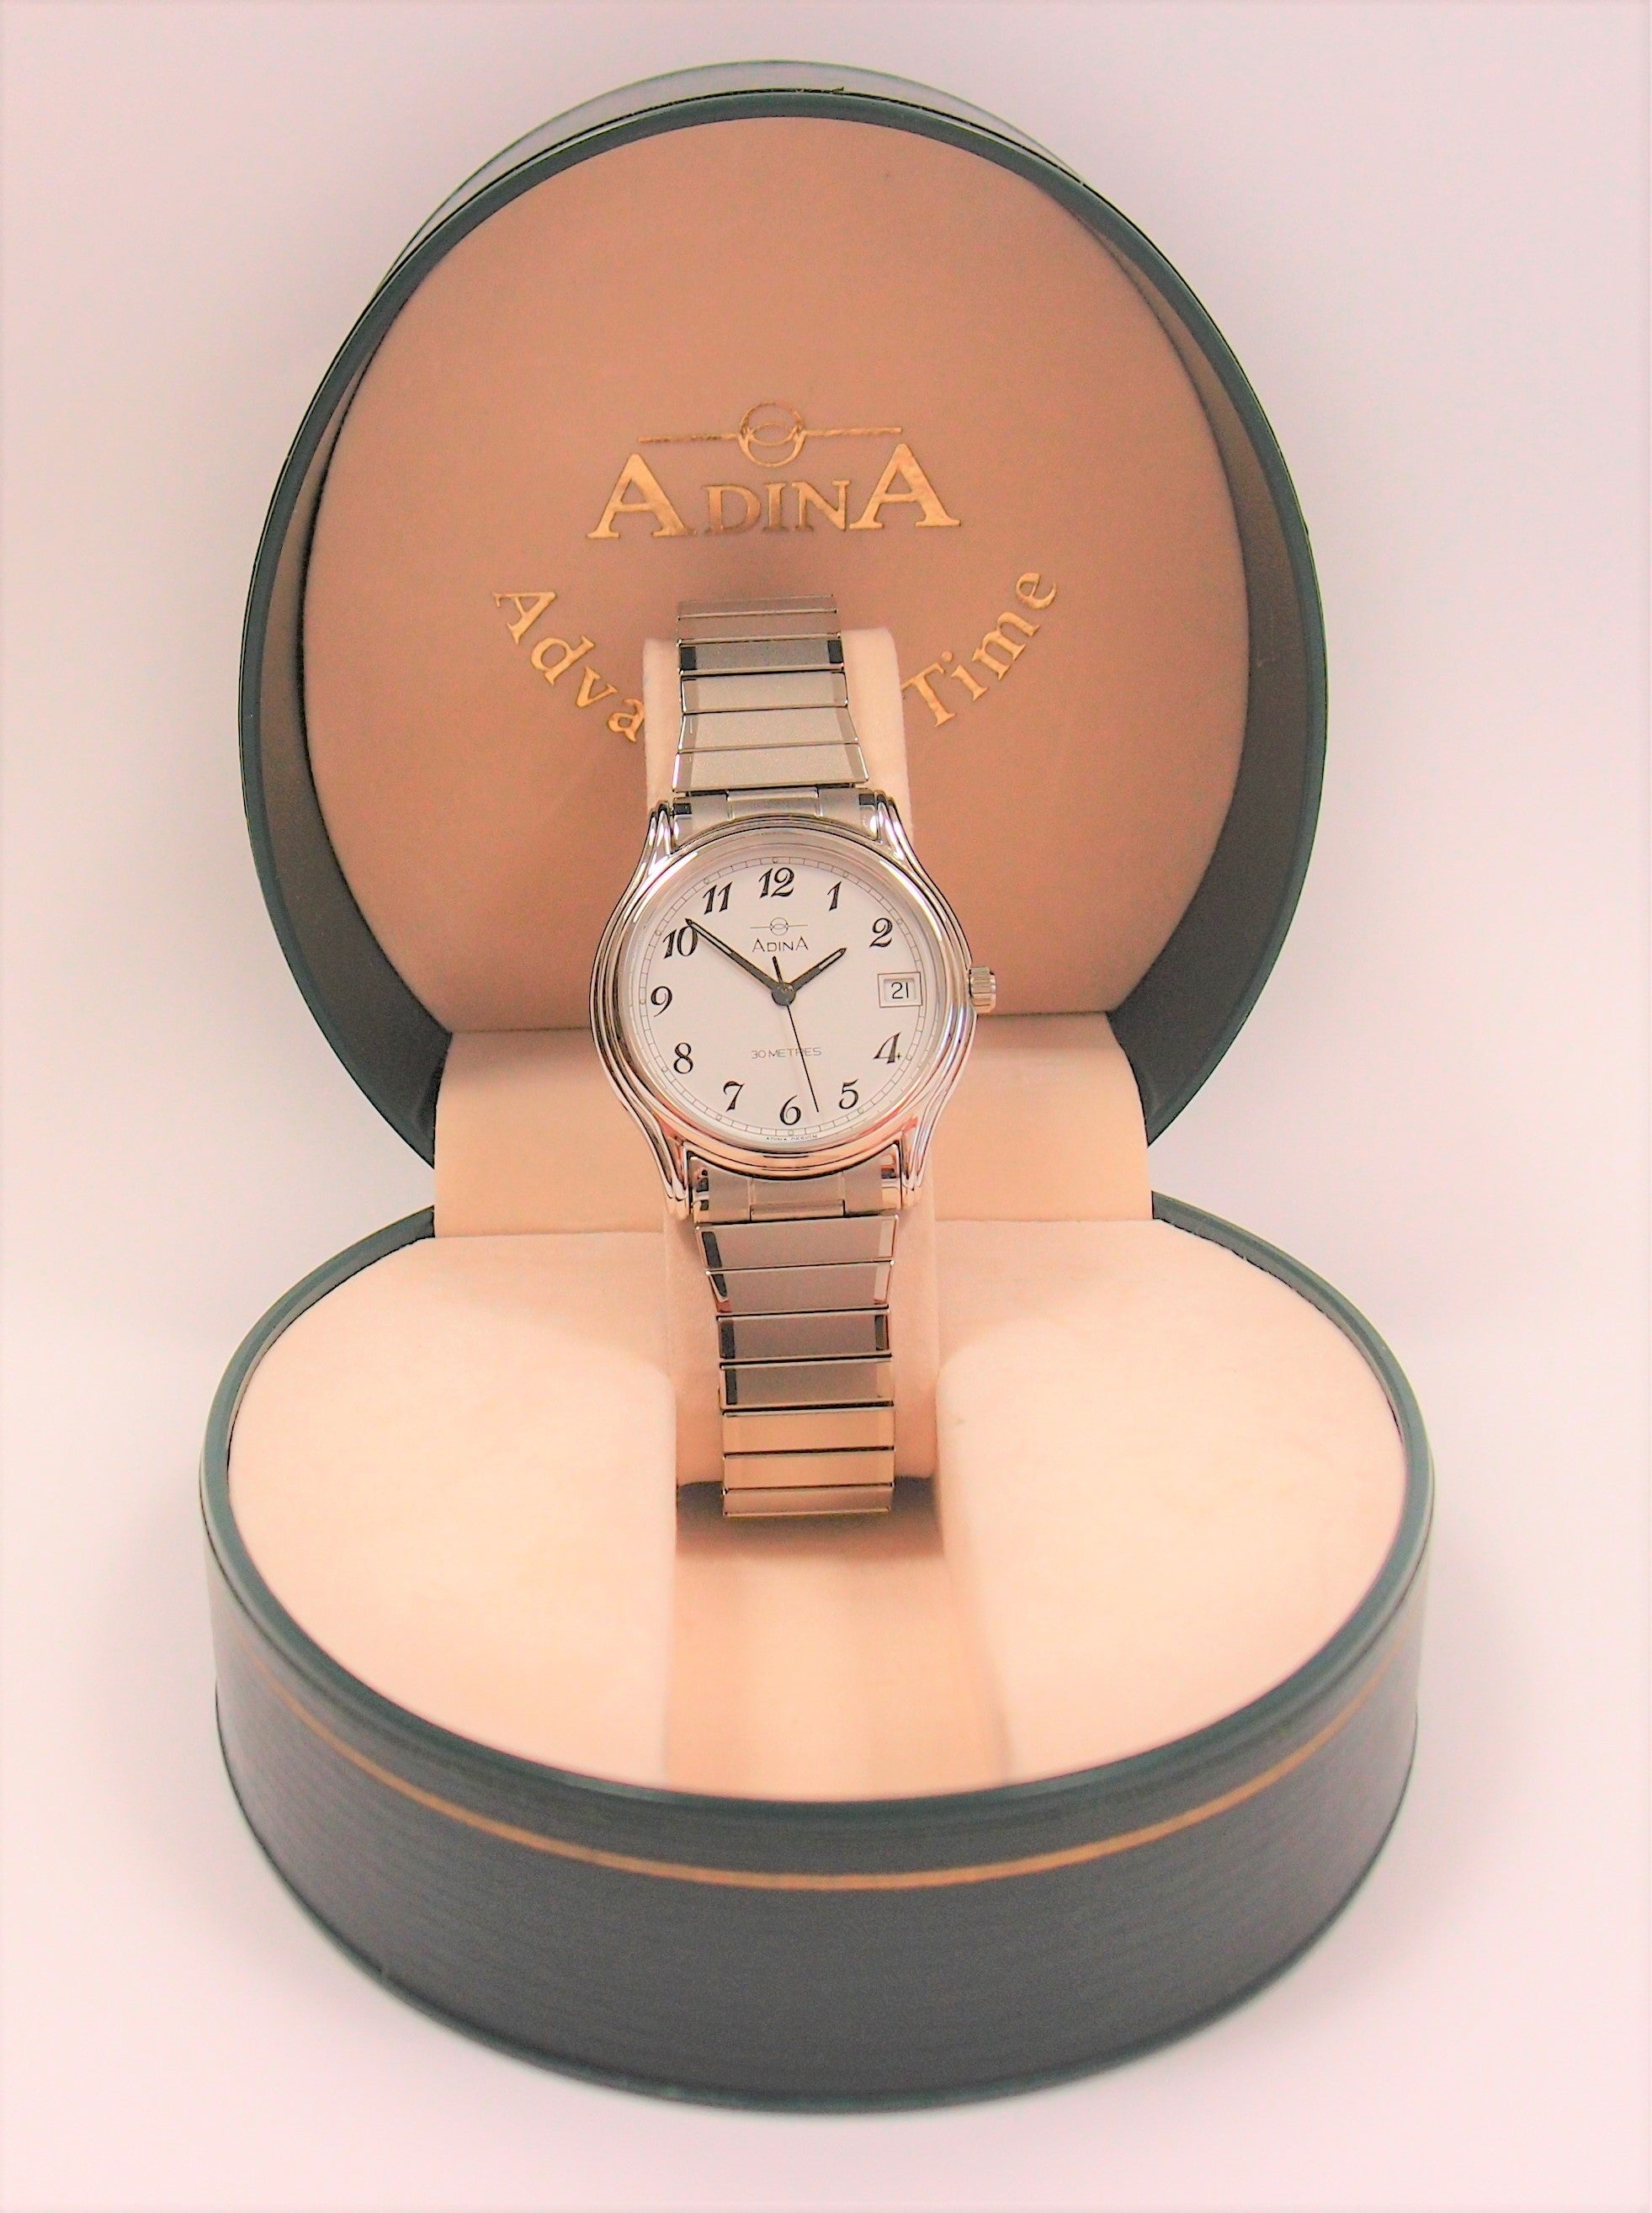 Adina Stainless Steel Gents Watch: Pre-adored